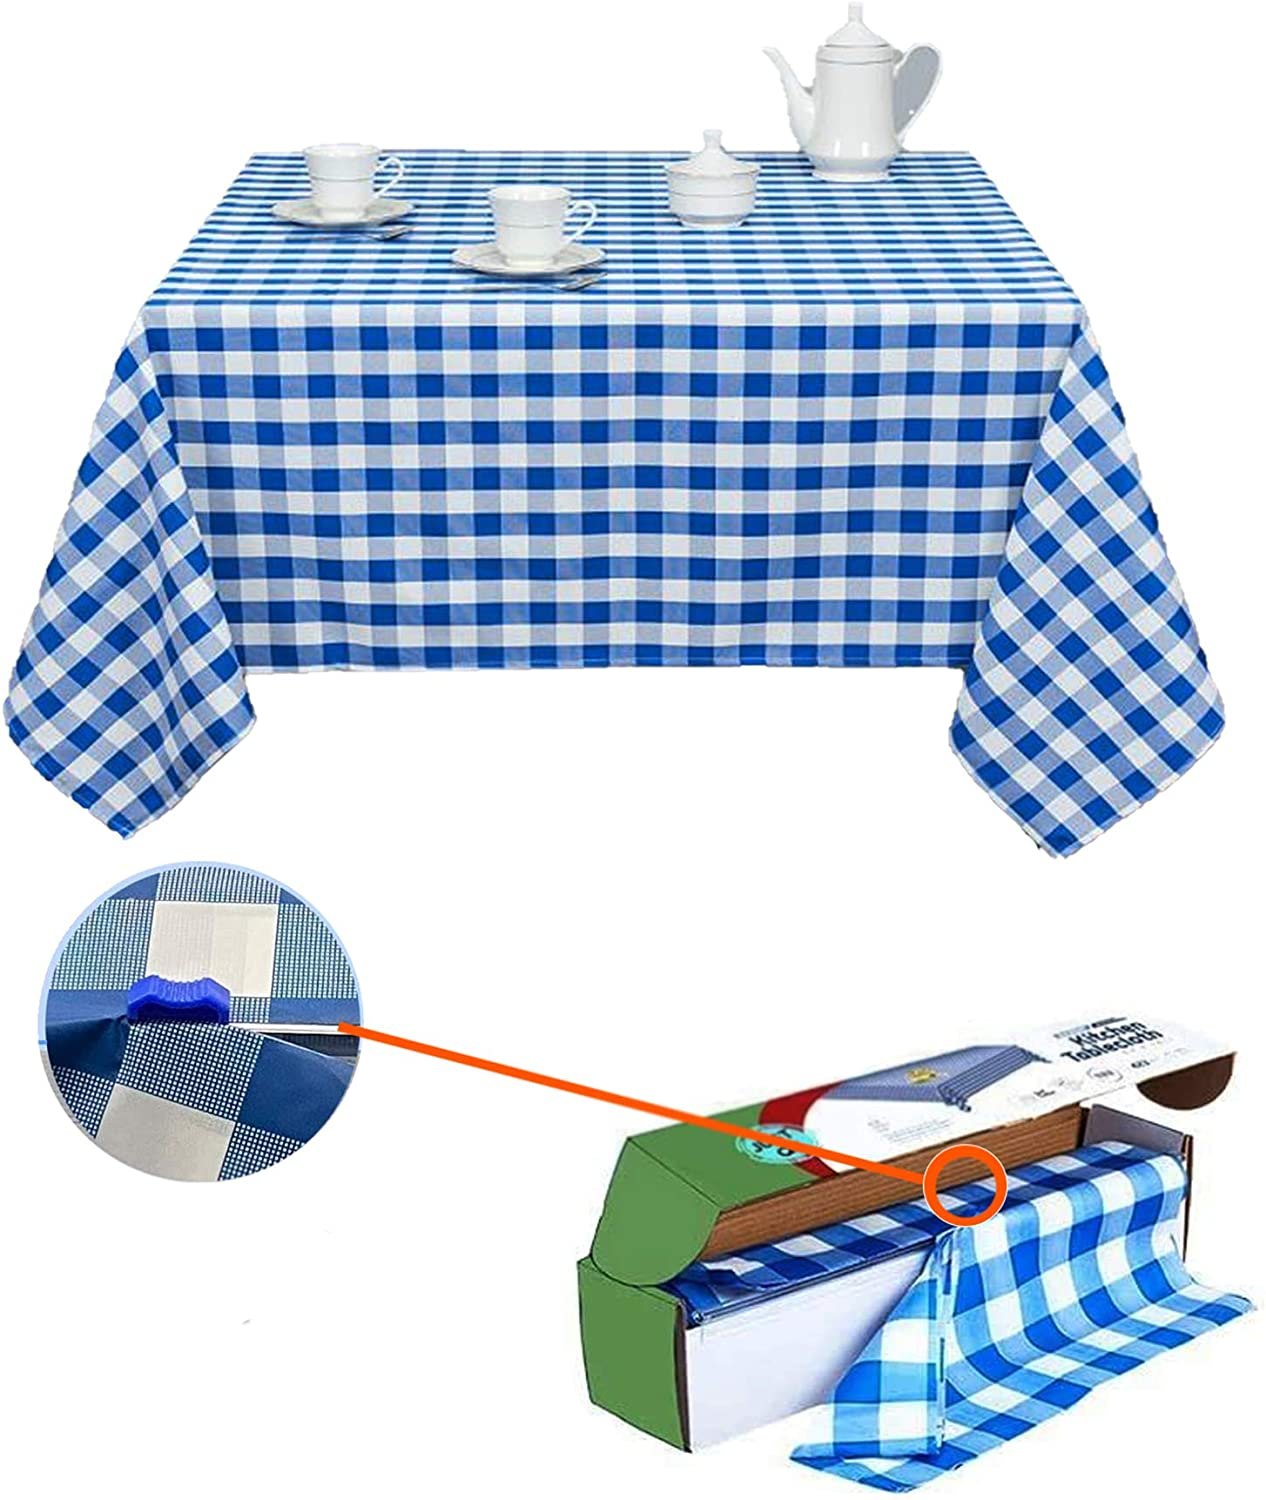 Blue Gingham Checkered Table Cloth - 20x Normal Tables roll - Self Cutter Picnic Durable Table Cover Plastic, Tablecloth Rectangle Roll 54 Inch X 100 | Water Resistant Party Decor